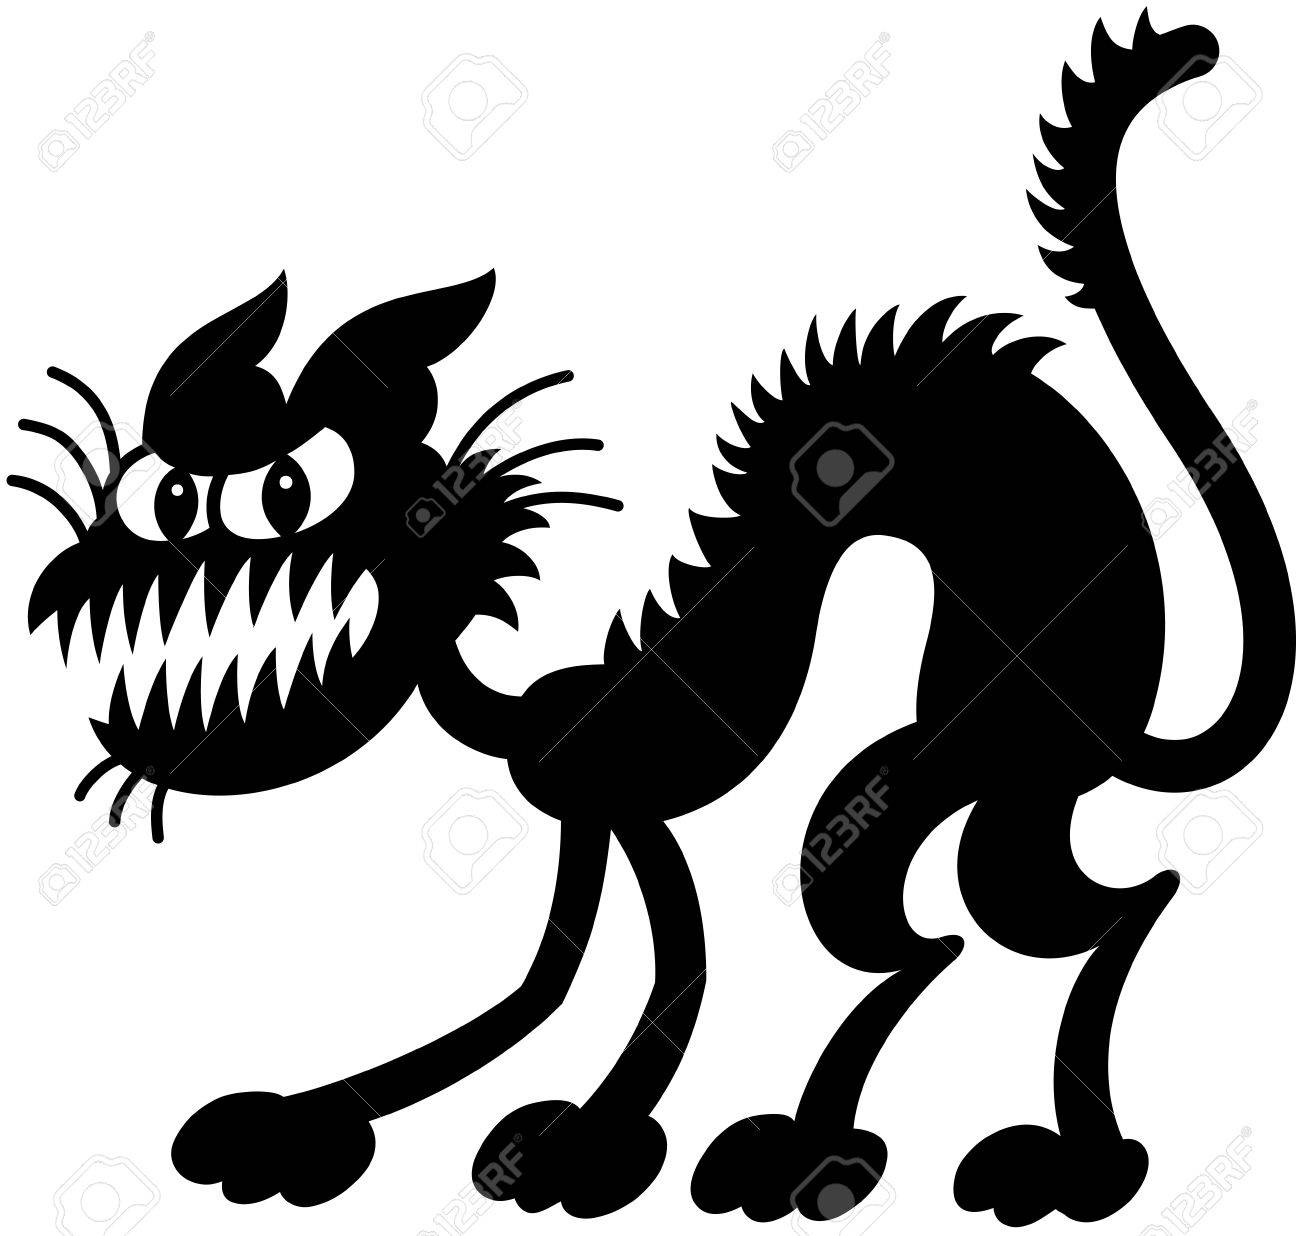 Silhouetted spooky black cat expressing how bad and scared his mood is by bristling, bending his body, showing his teeth and staring at you Stock Vector - 21454256